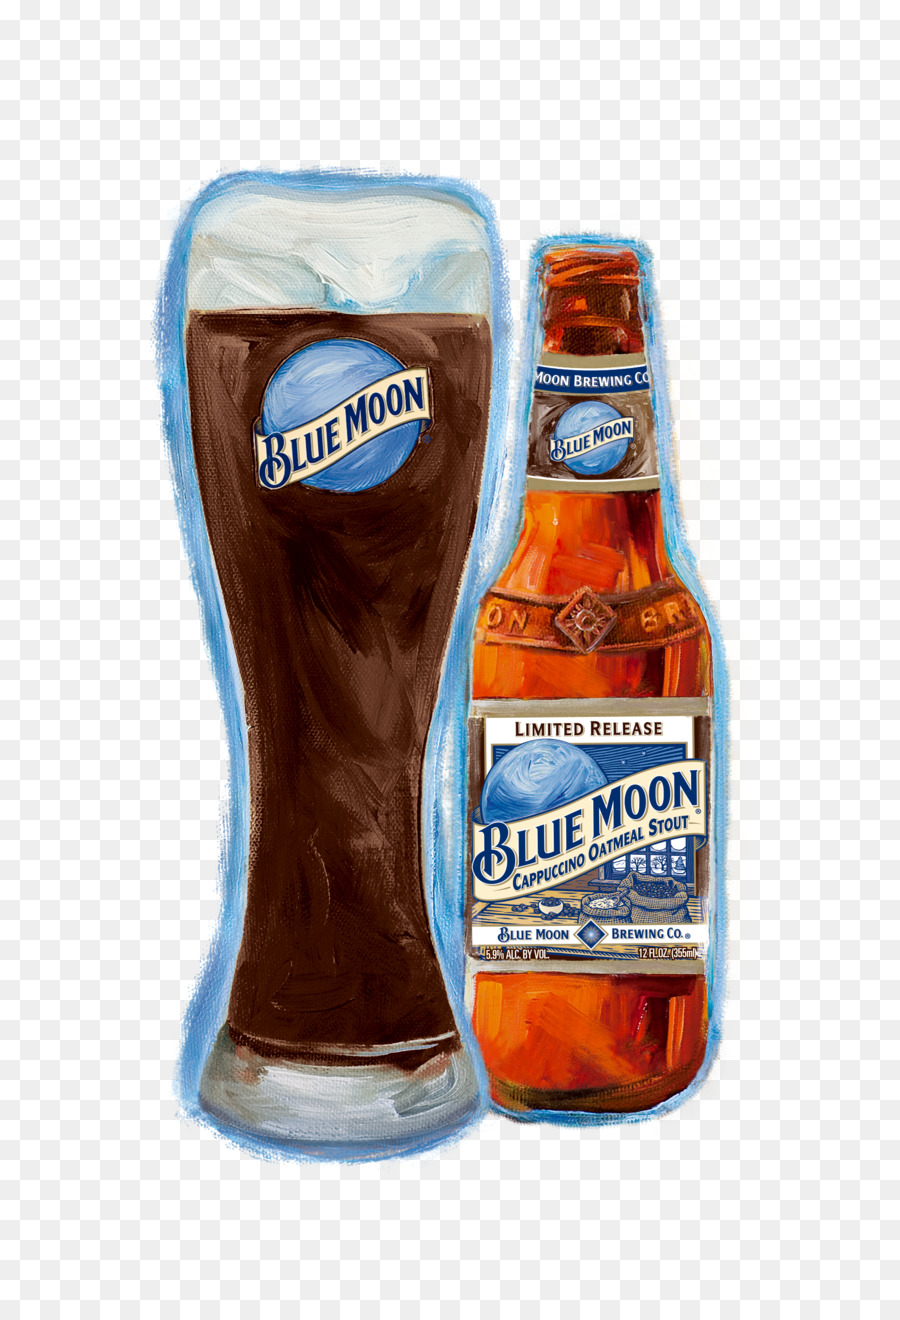 Blue Moon png download.